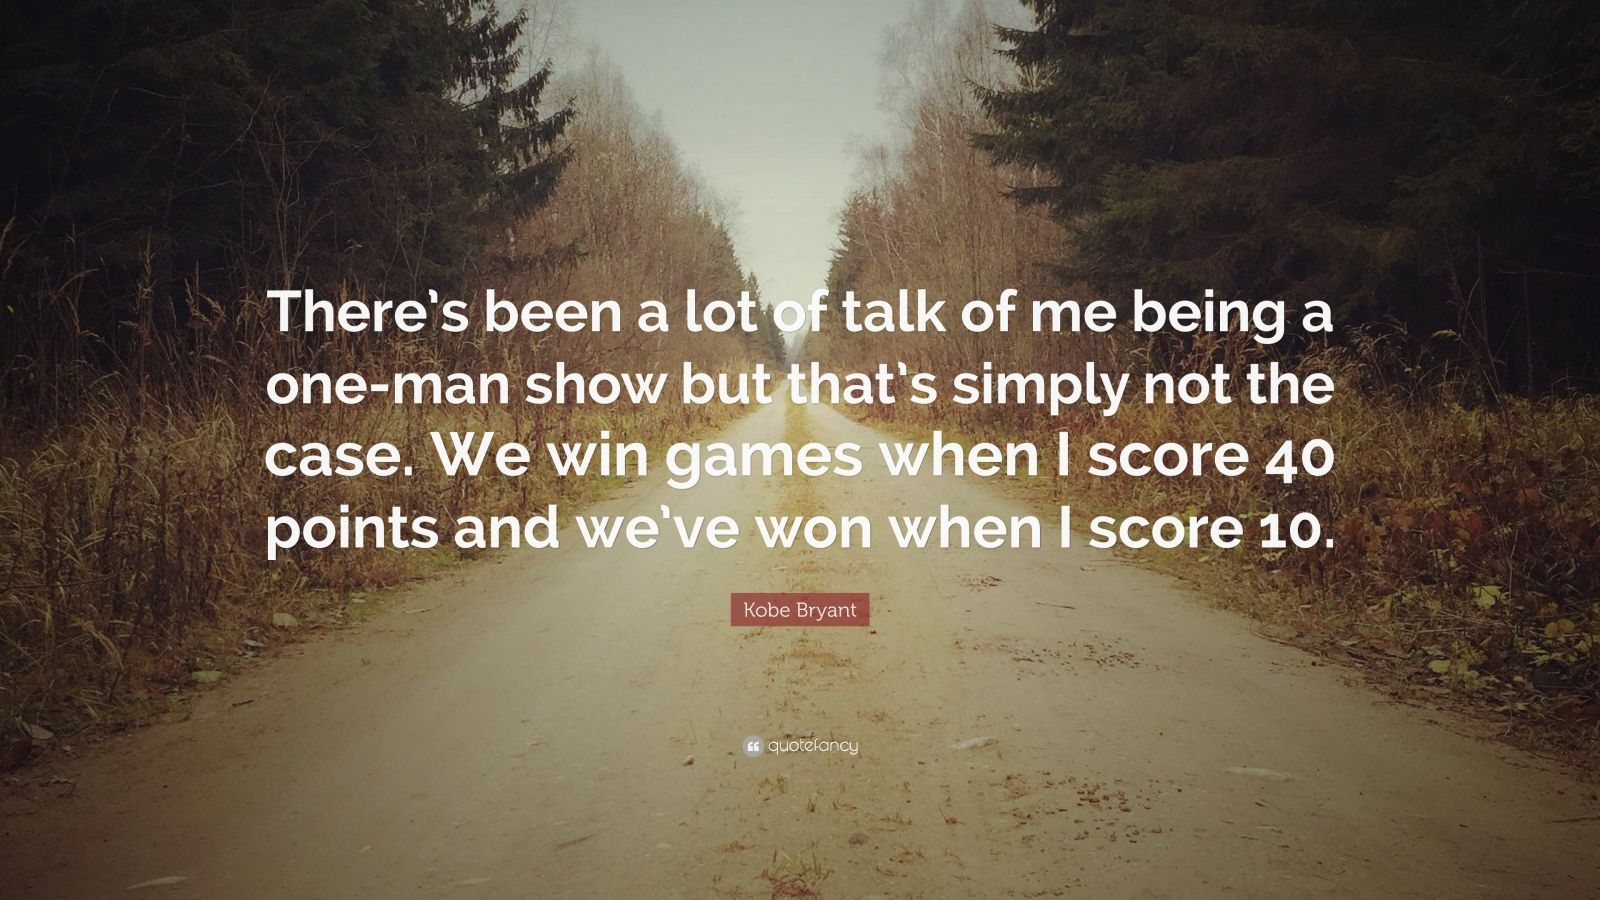 """Kobe Bryant Quote: """"There's been a lot of talk of me being a one-man show but that's simply not the case. We win games when I score 40 points and we've won when I score 10."""""""